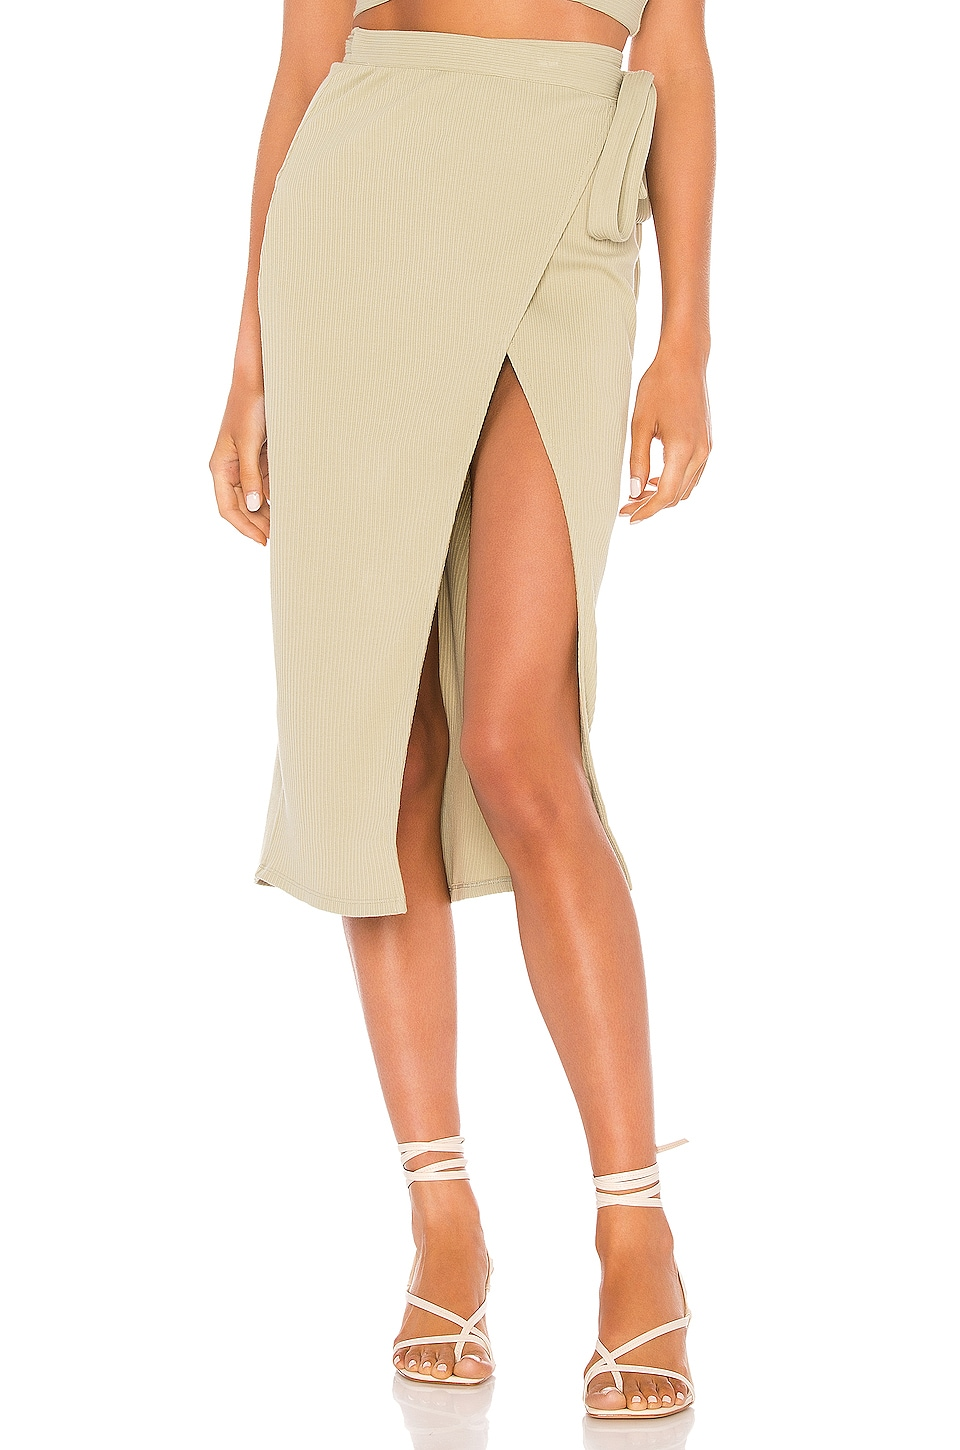 Privacy Please Catalina Midi Skirt in Sage Green